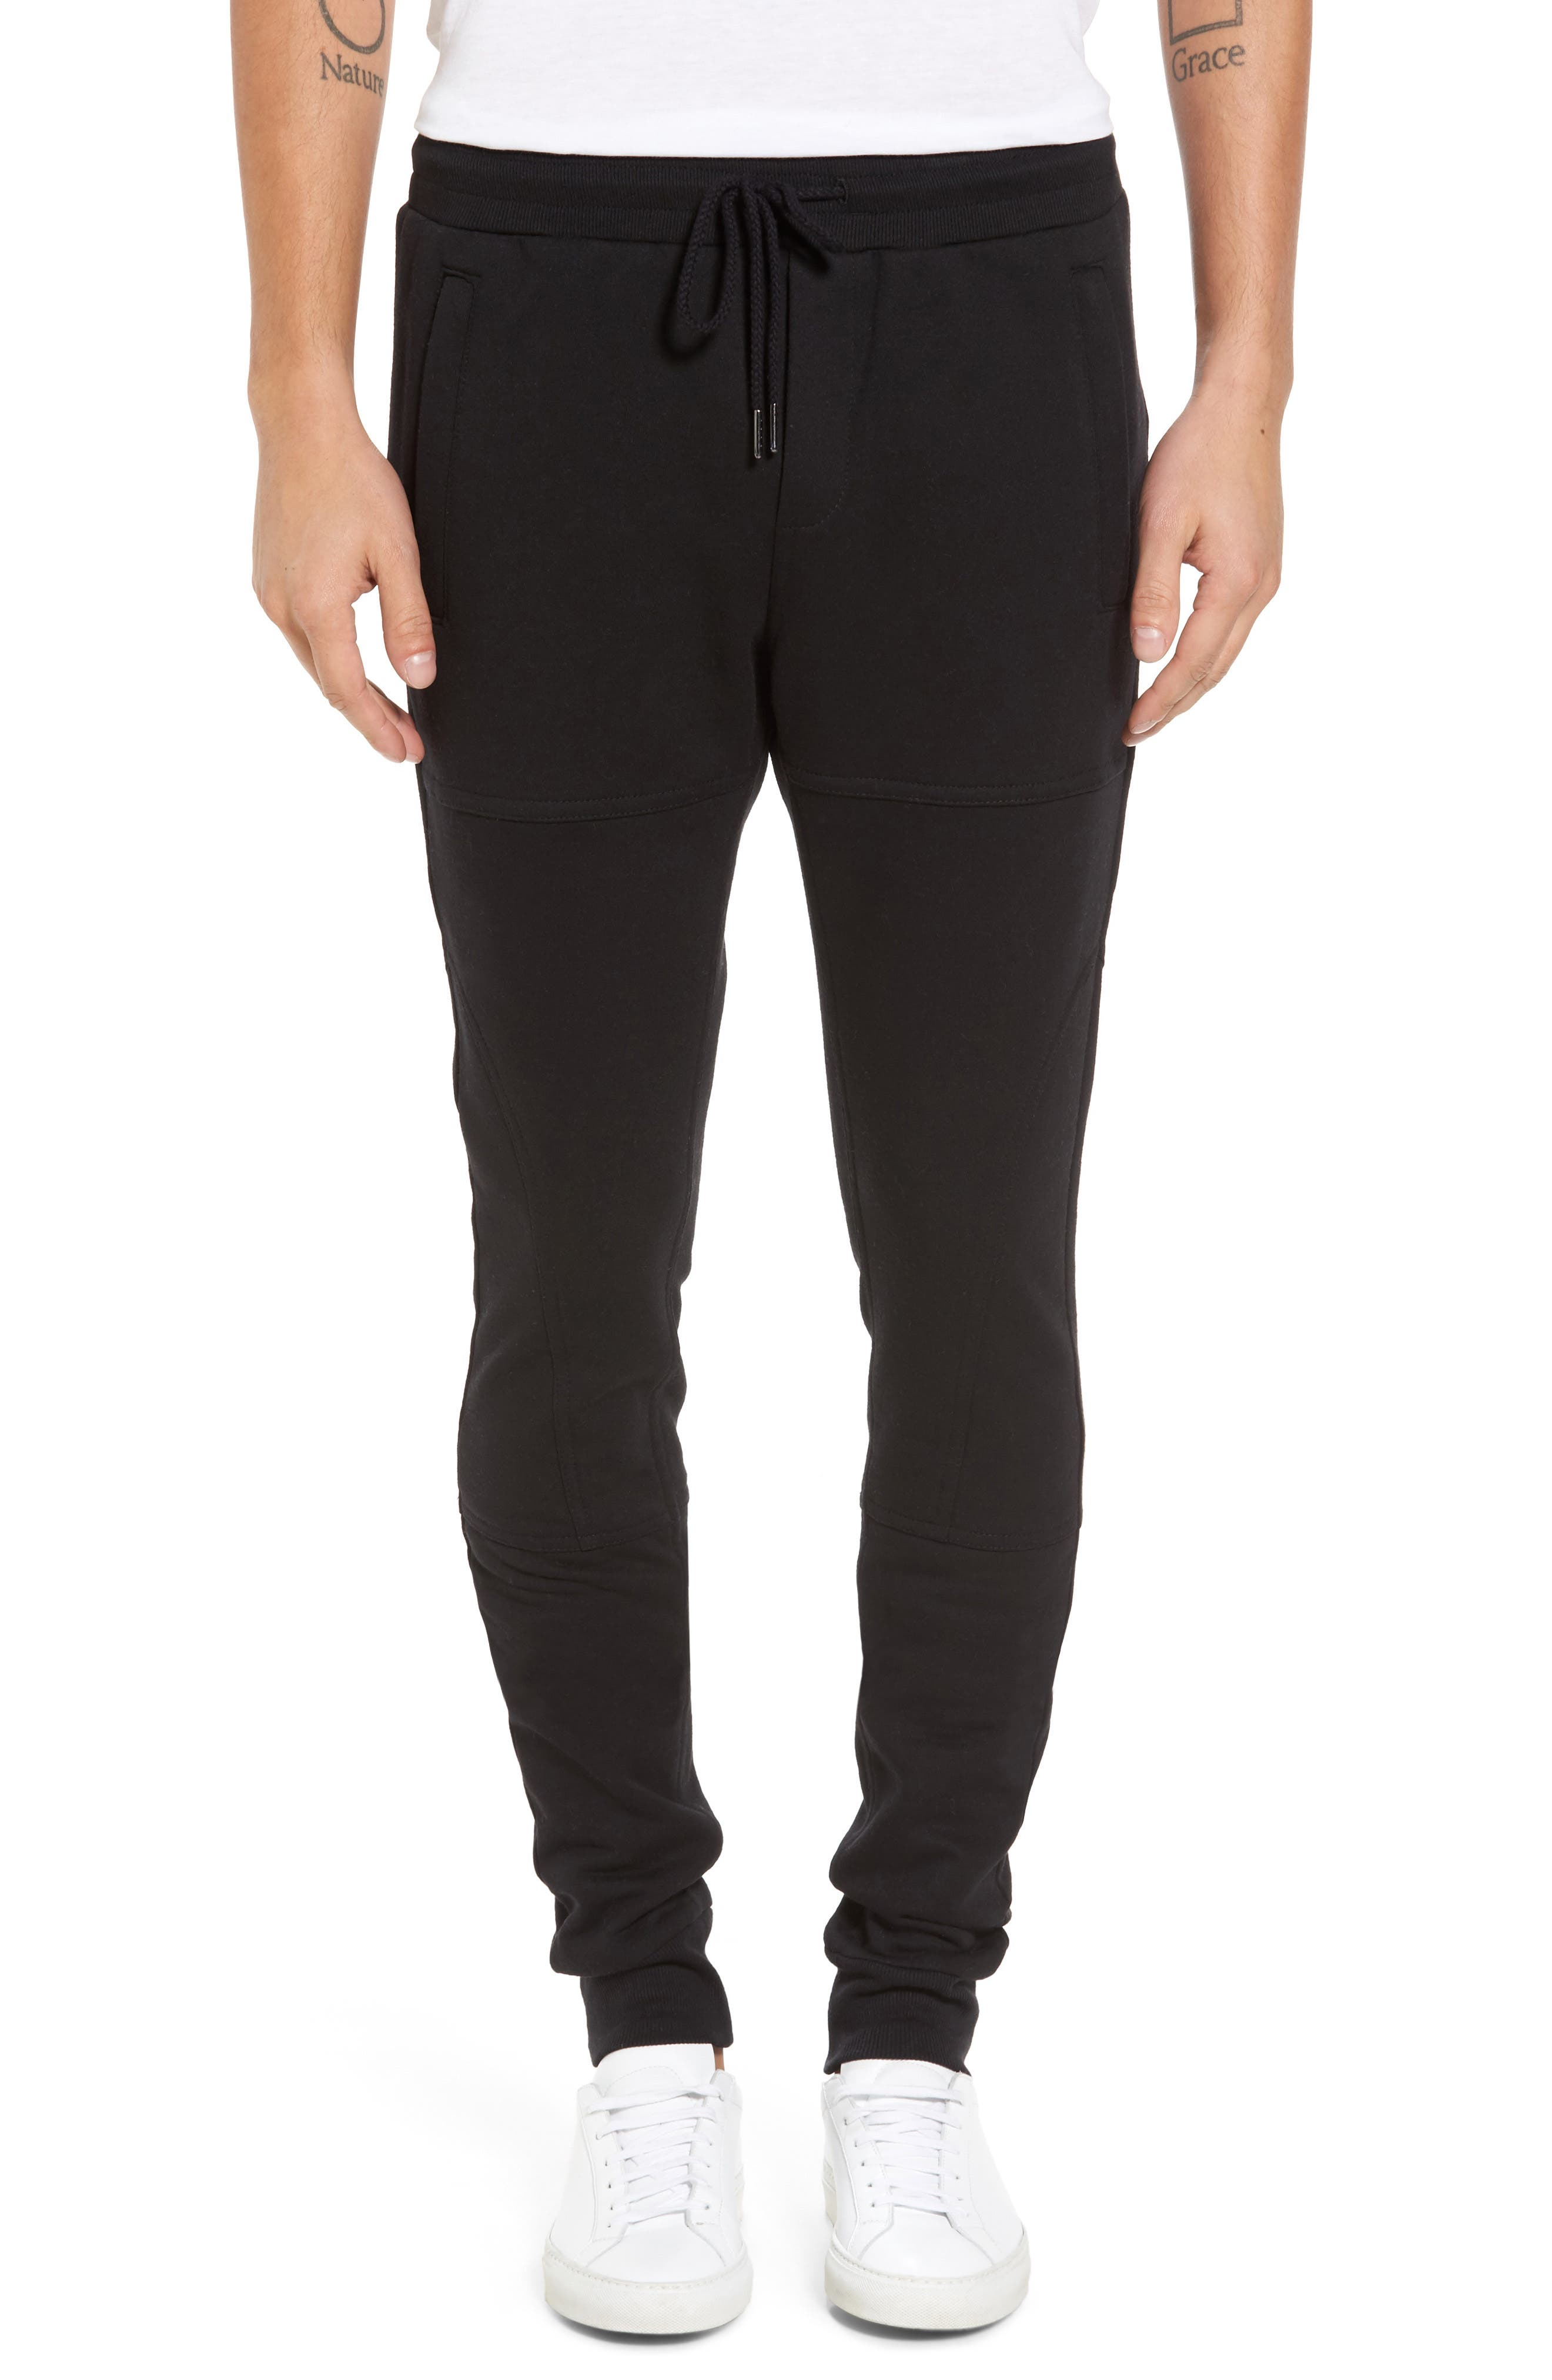 French Terry Sweatpants,                             Main thumbnail 1, color,                             001